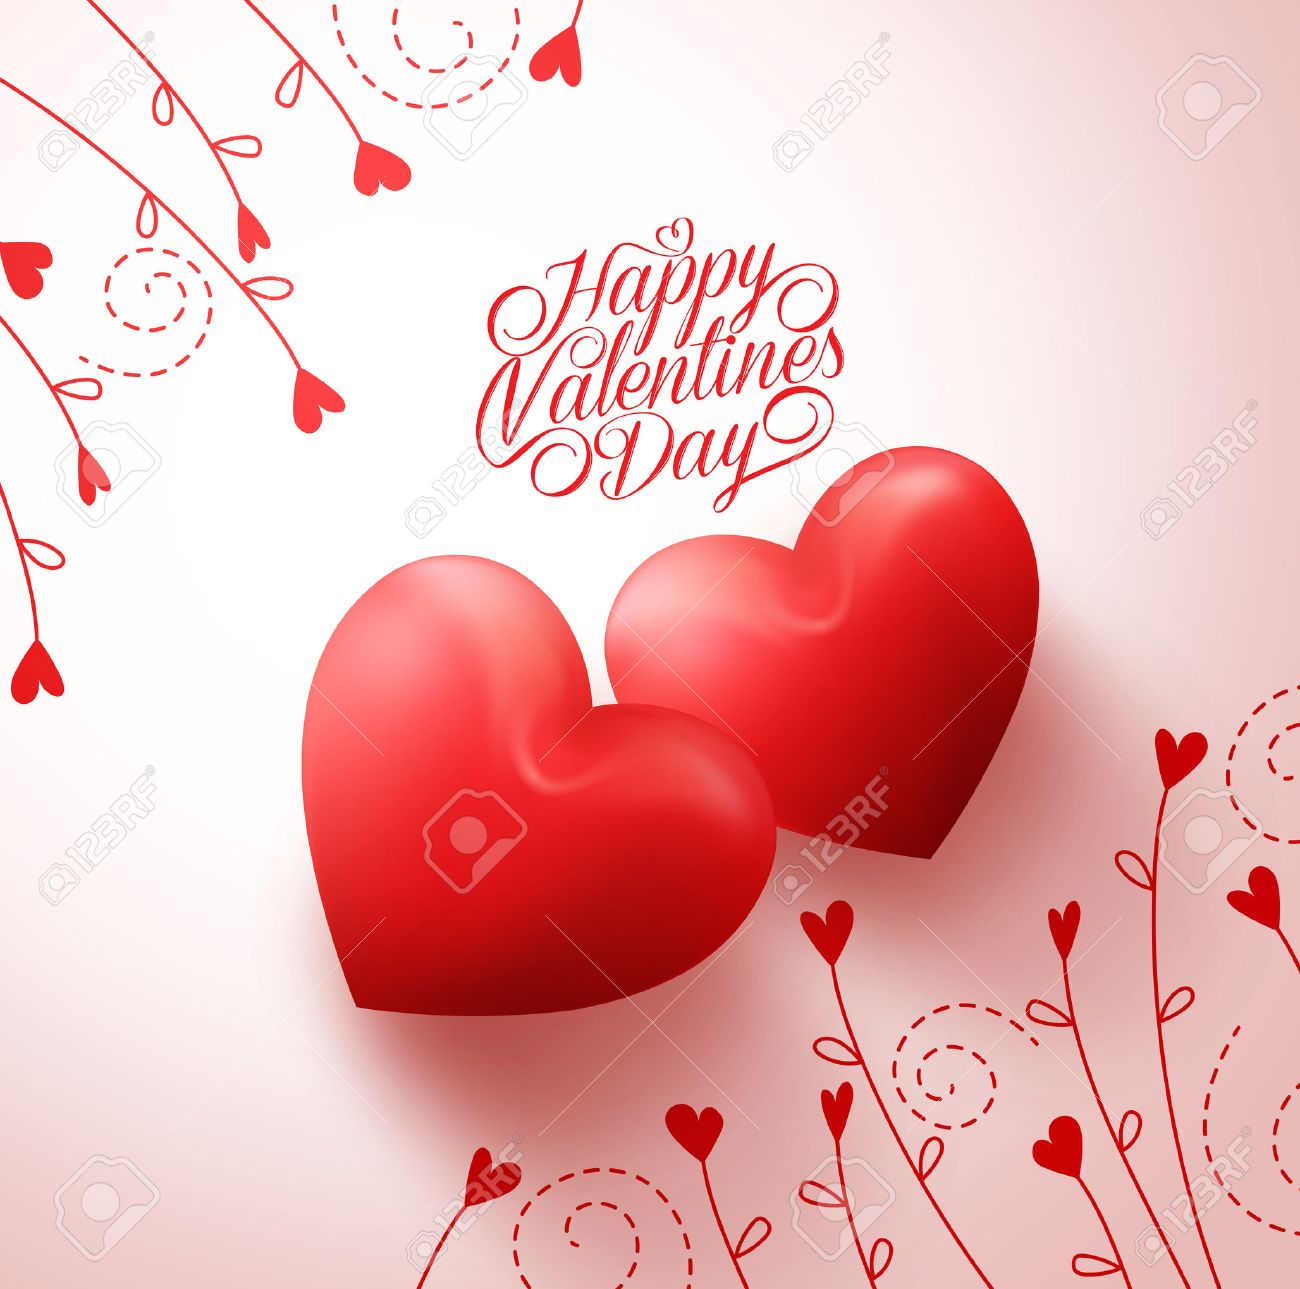 Two Red Hearts For Lovers With Happy Valentines Day Greetings